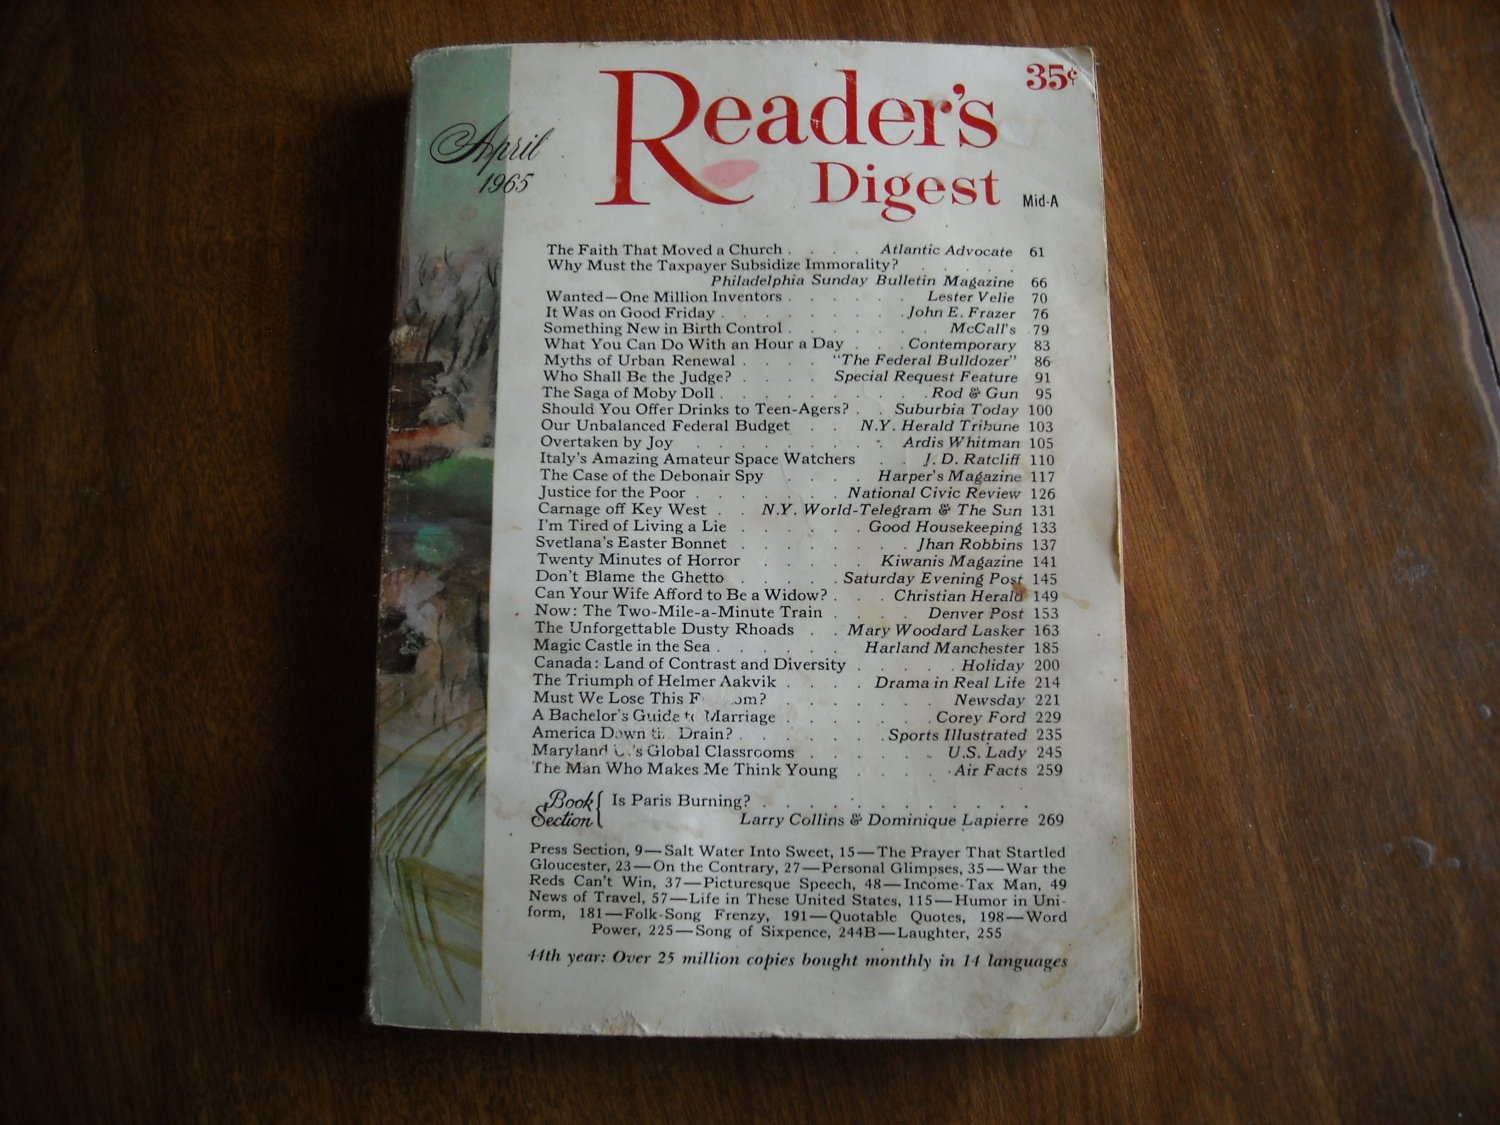 Reader's Digest Magazine April 1965 Good Friday Key West Justice for the poor